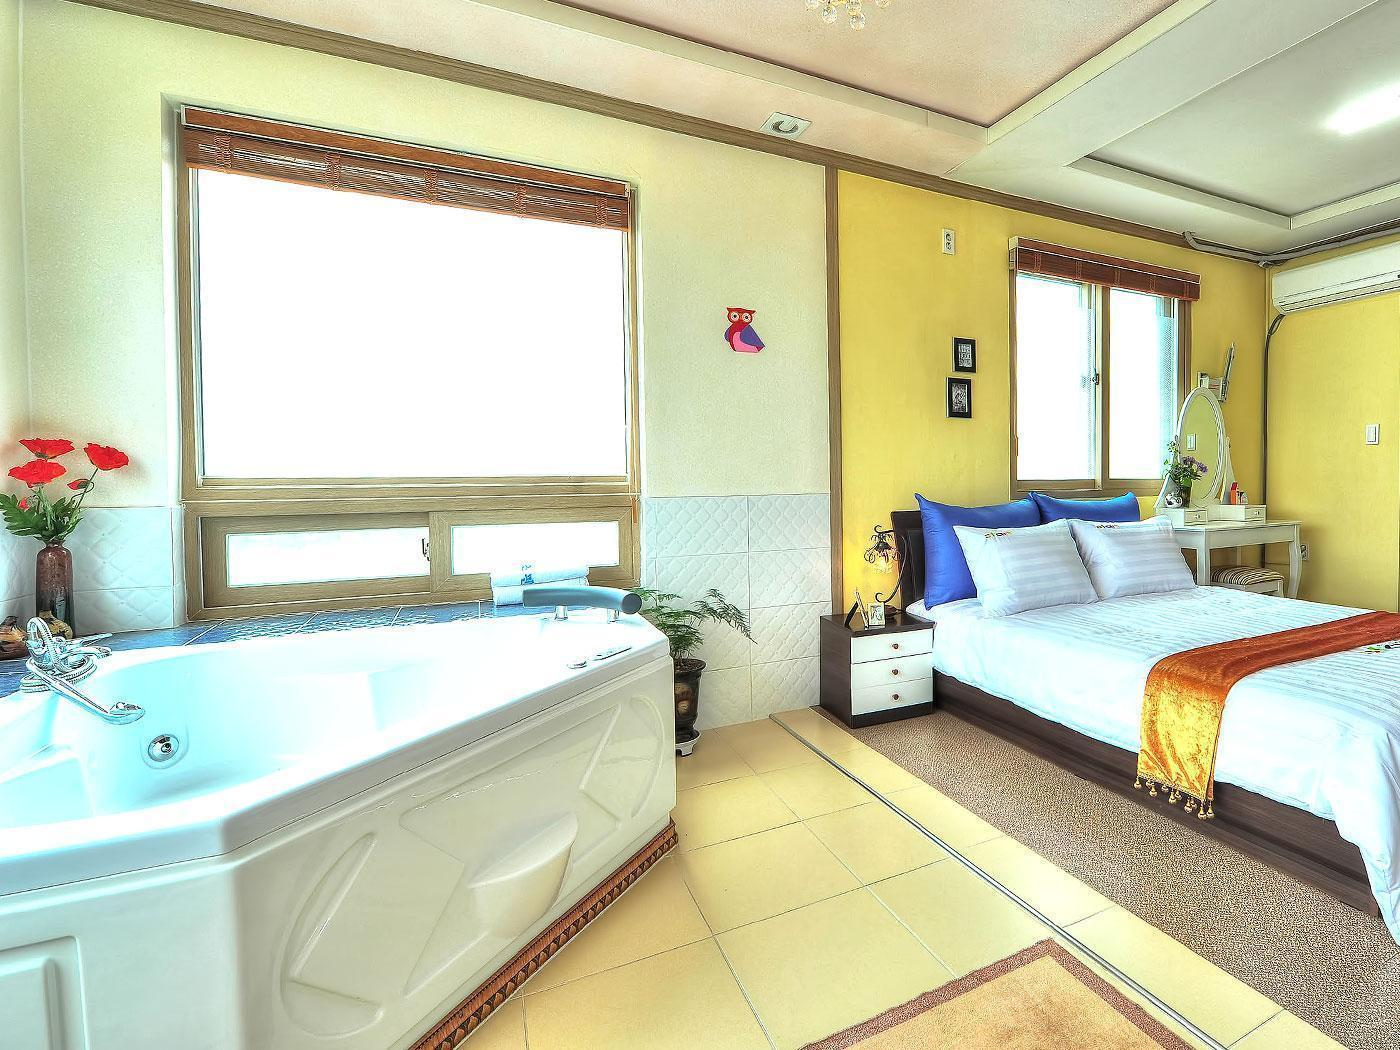 Deluxe Room with Whirlpool